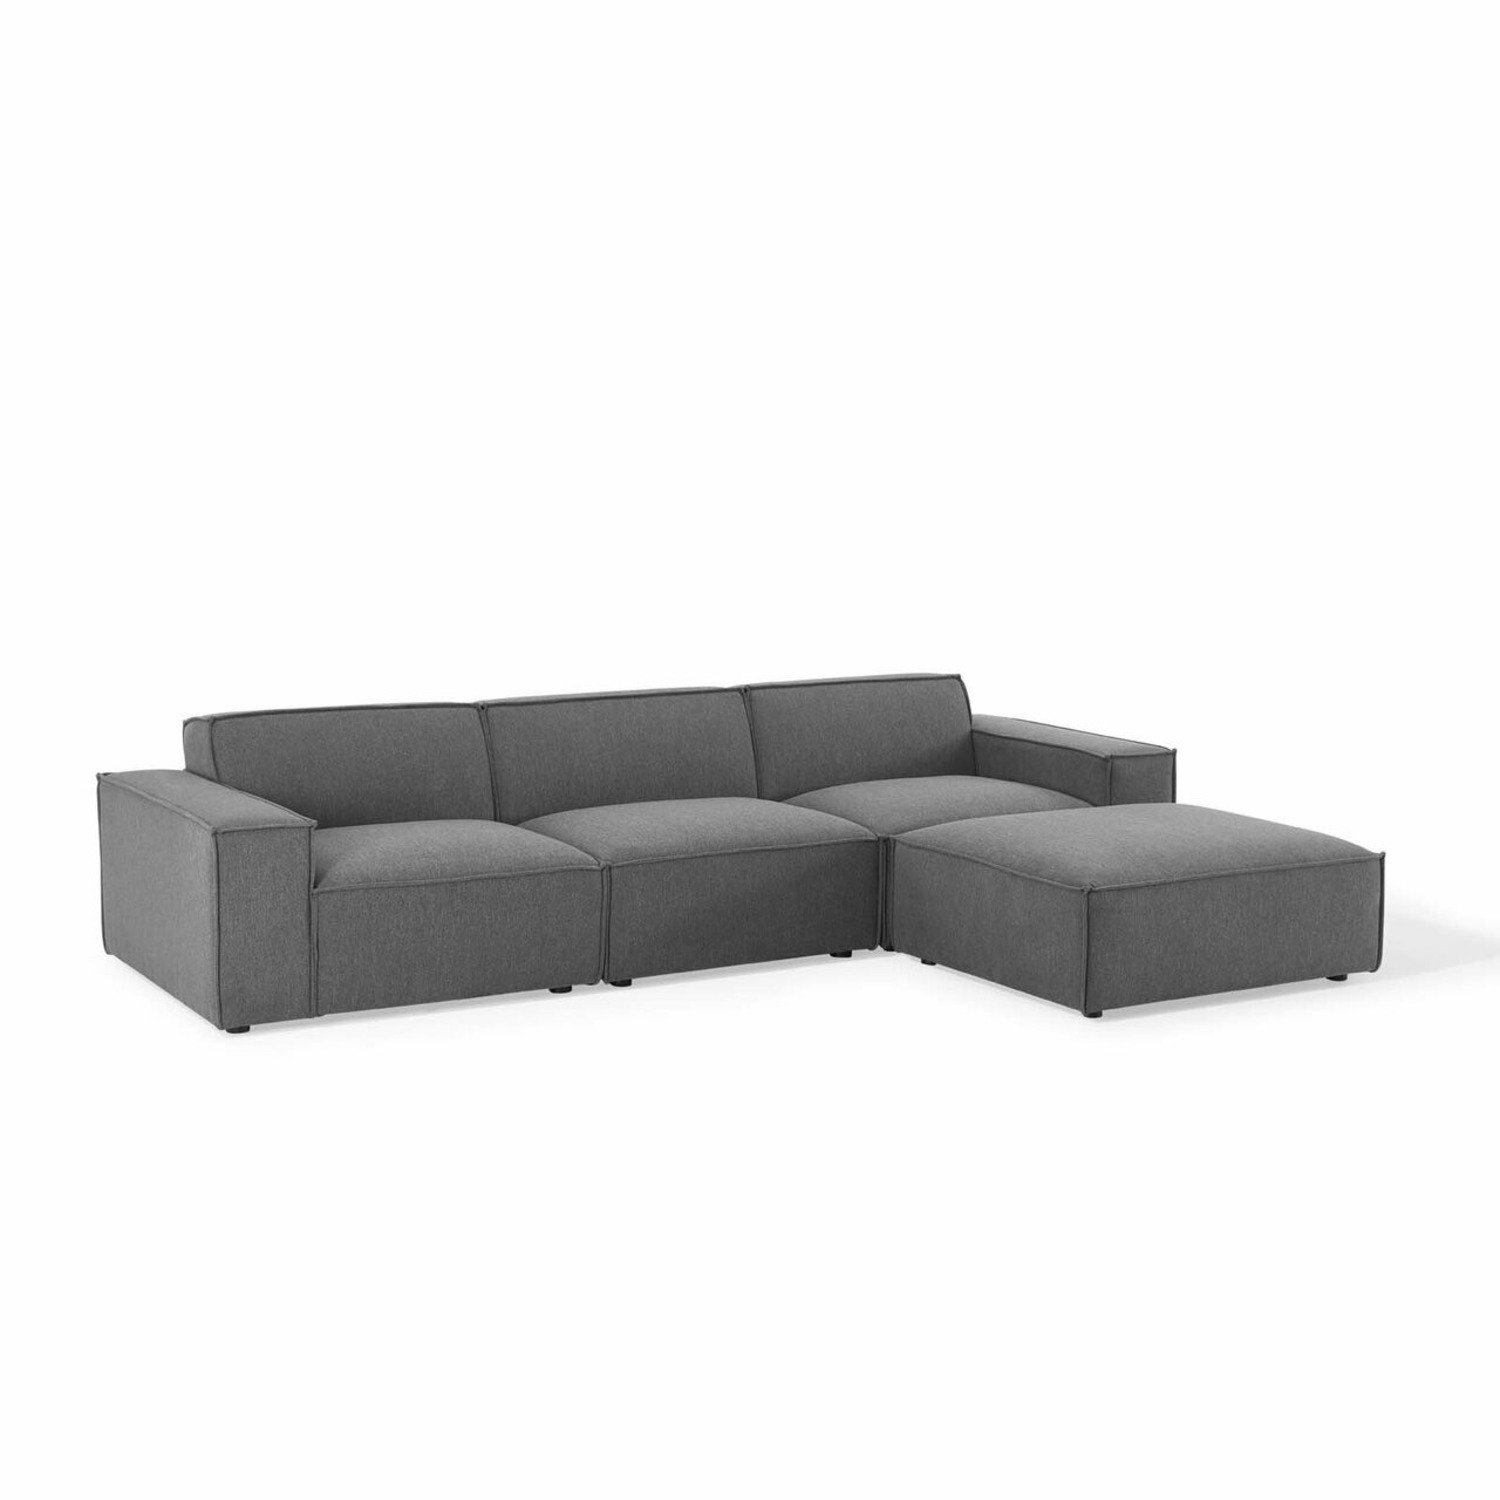 4-Piece Sectional Sofa In Charcoal Fabric Finish - image-0